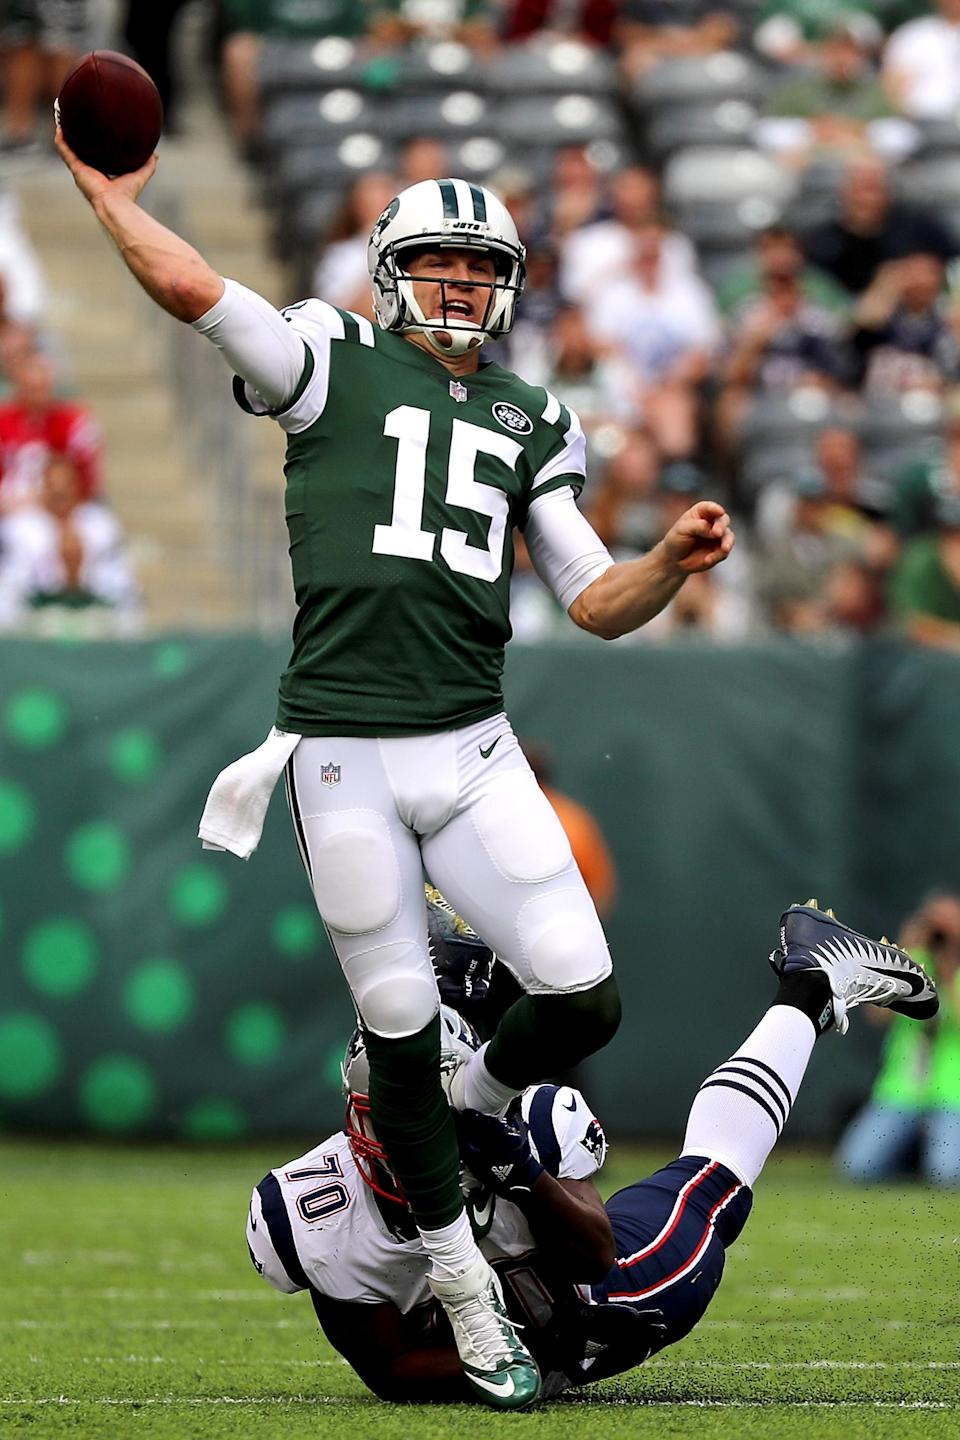 <p>Josh McCown #15 of the New York Jets thows the ball in the first quarter against the New England Patriots during their game at MetLife Stadium on October 15, 2017 in East Rutherford, New Jersey. (Photo by Abbie Parr/Getty Images) </p>